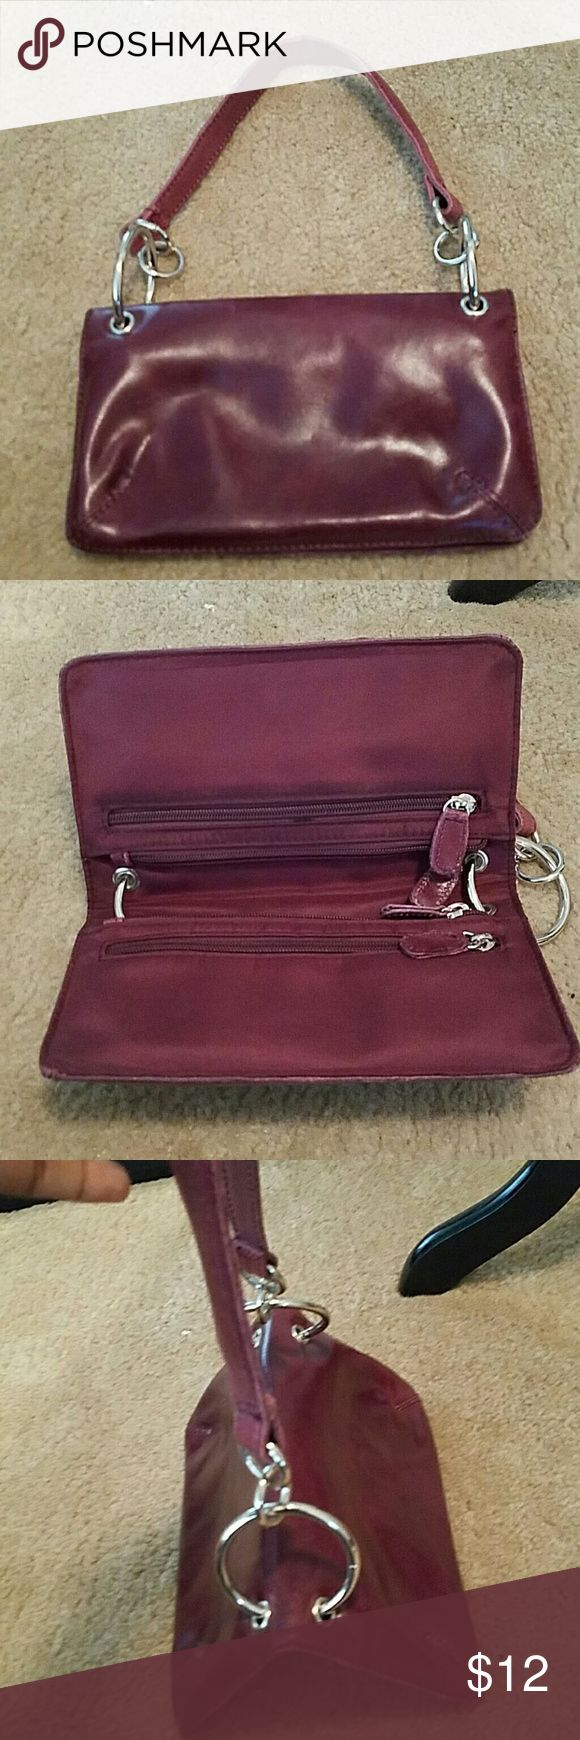 WILSON'S LEATHER Small Handbag Pre owned but in great condition. Burgundy. The leather strap does show more wear. Wilsons Leather Bags Clutches & Wristlets